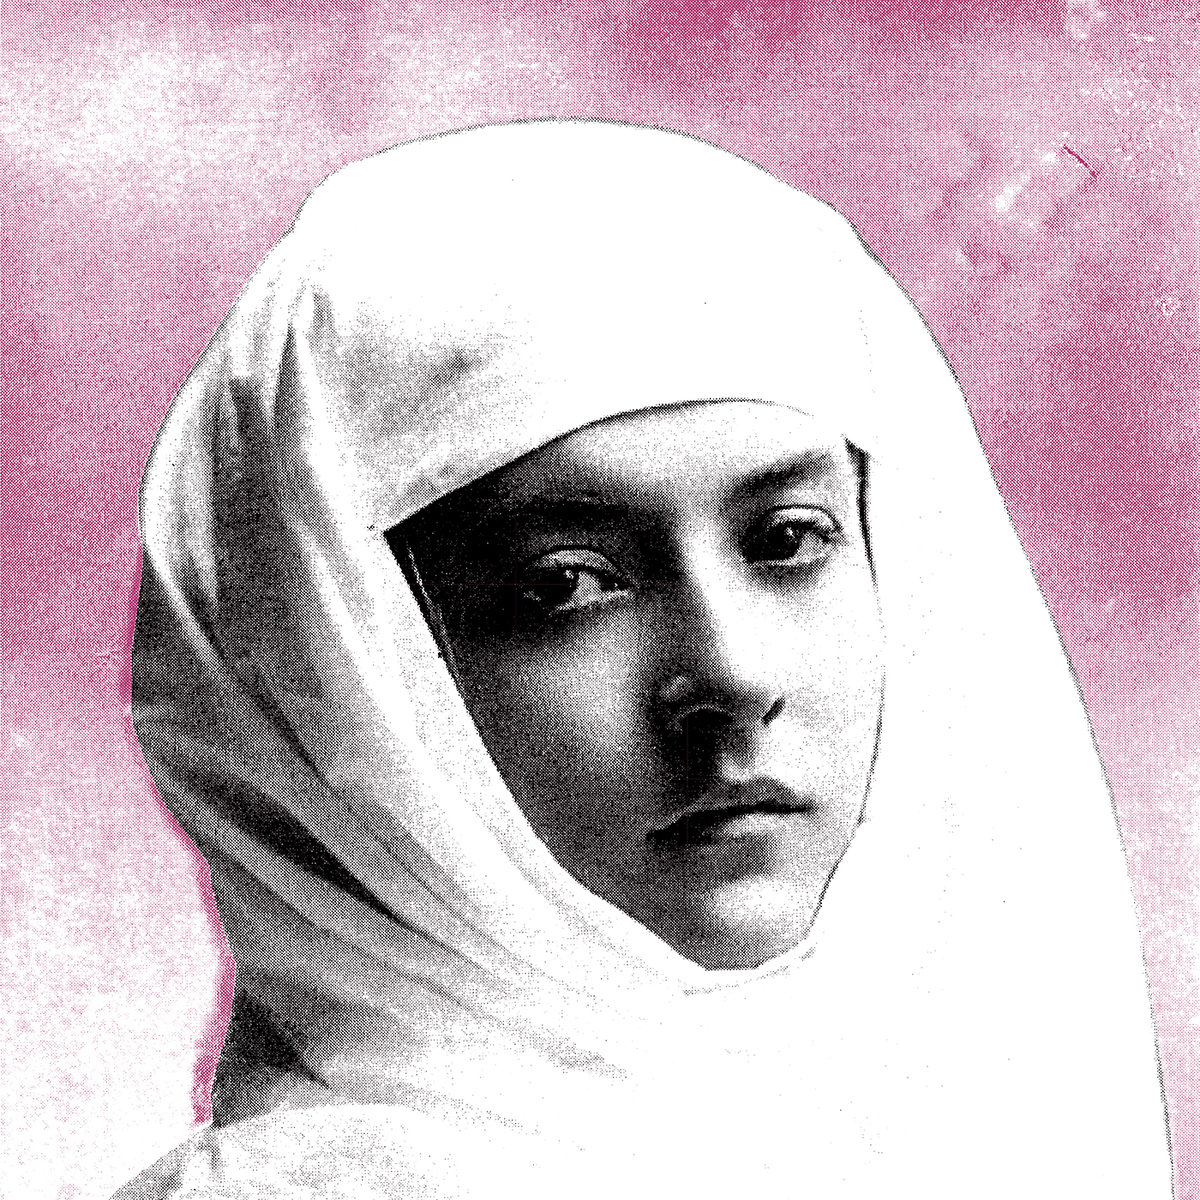 On our review of 'Relatives in Descent' Protomartyr